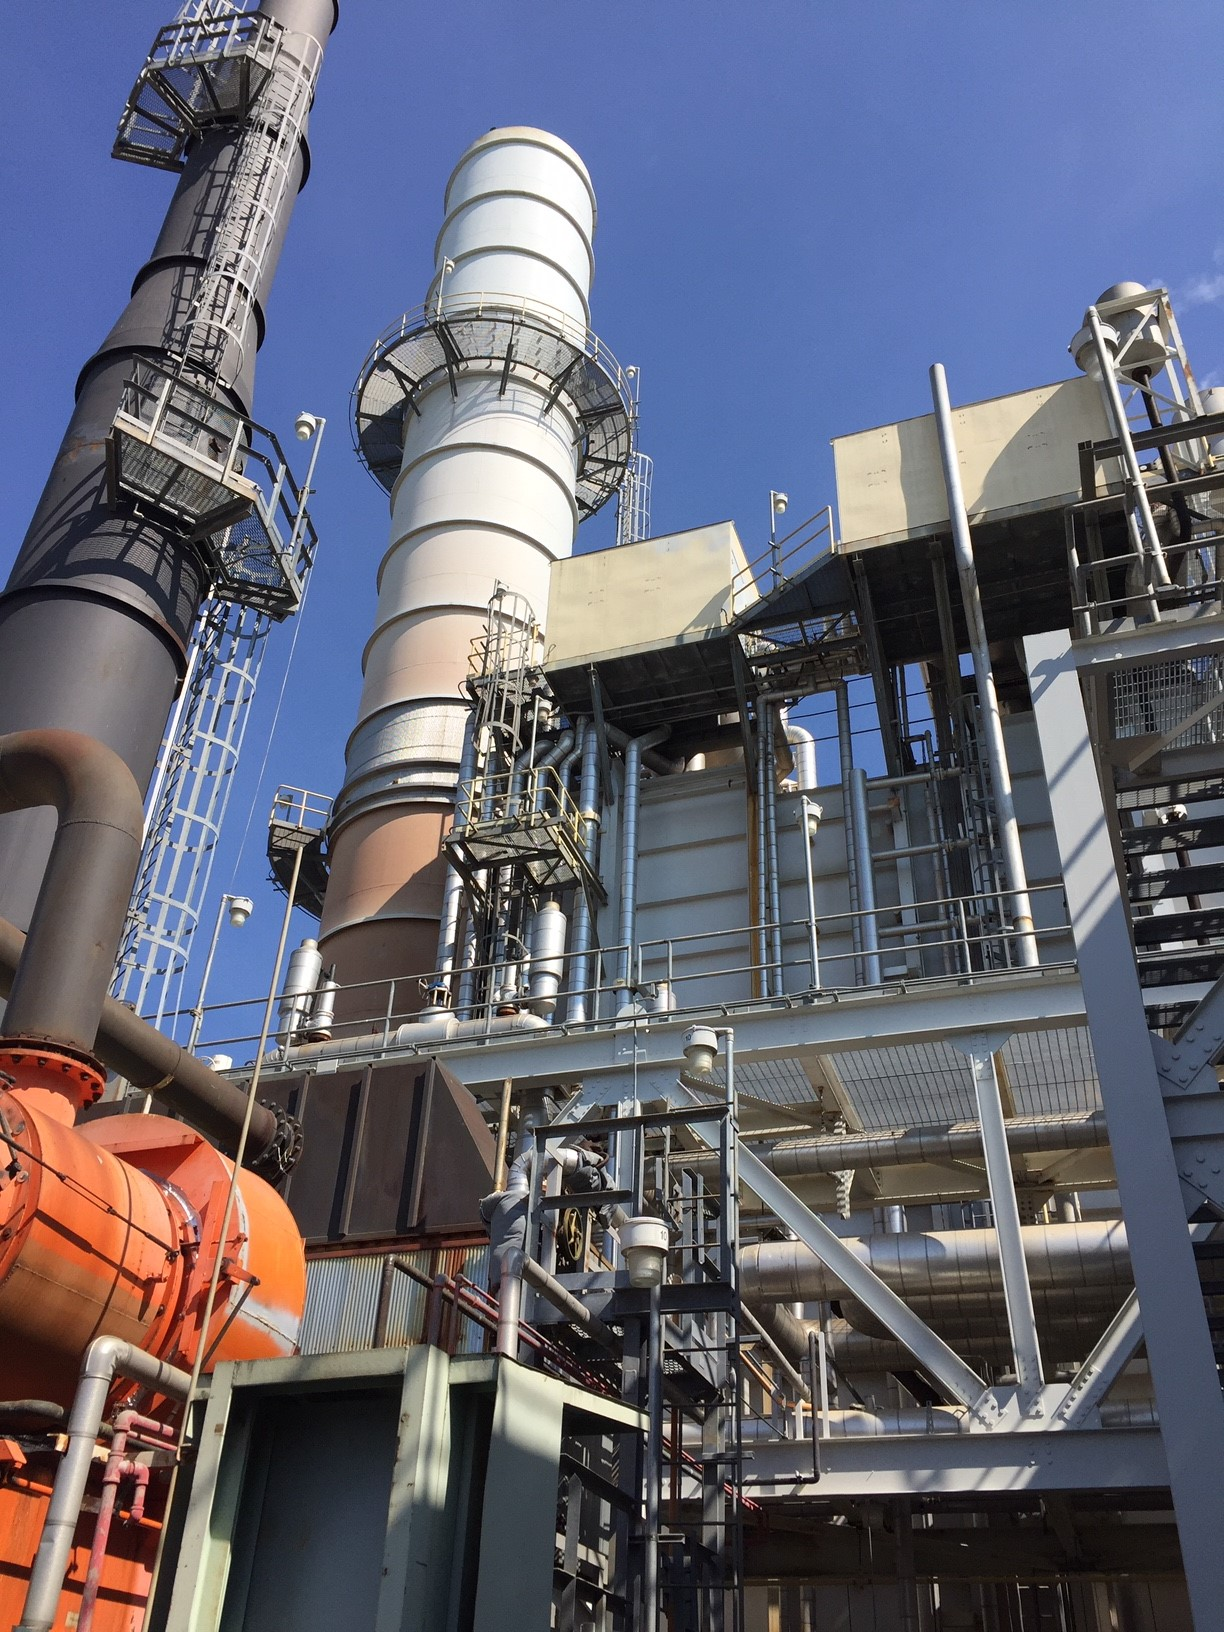 Combine Cycle Gas Turbine (CCGT) Power Plants that benefited from dry ice blast cleaning services for HRSG, CO & SCR catalyst